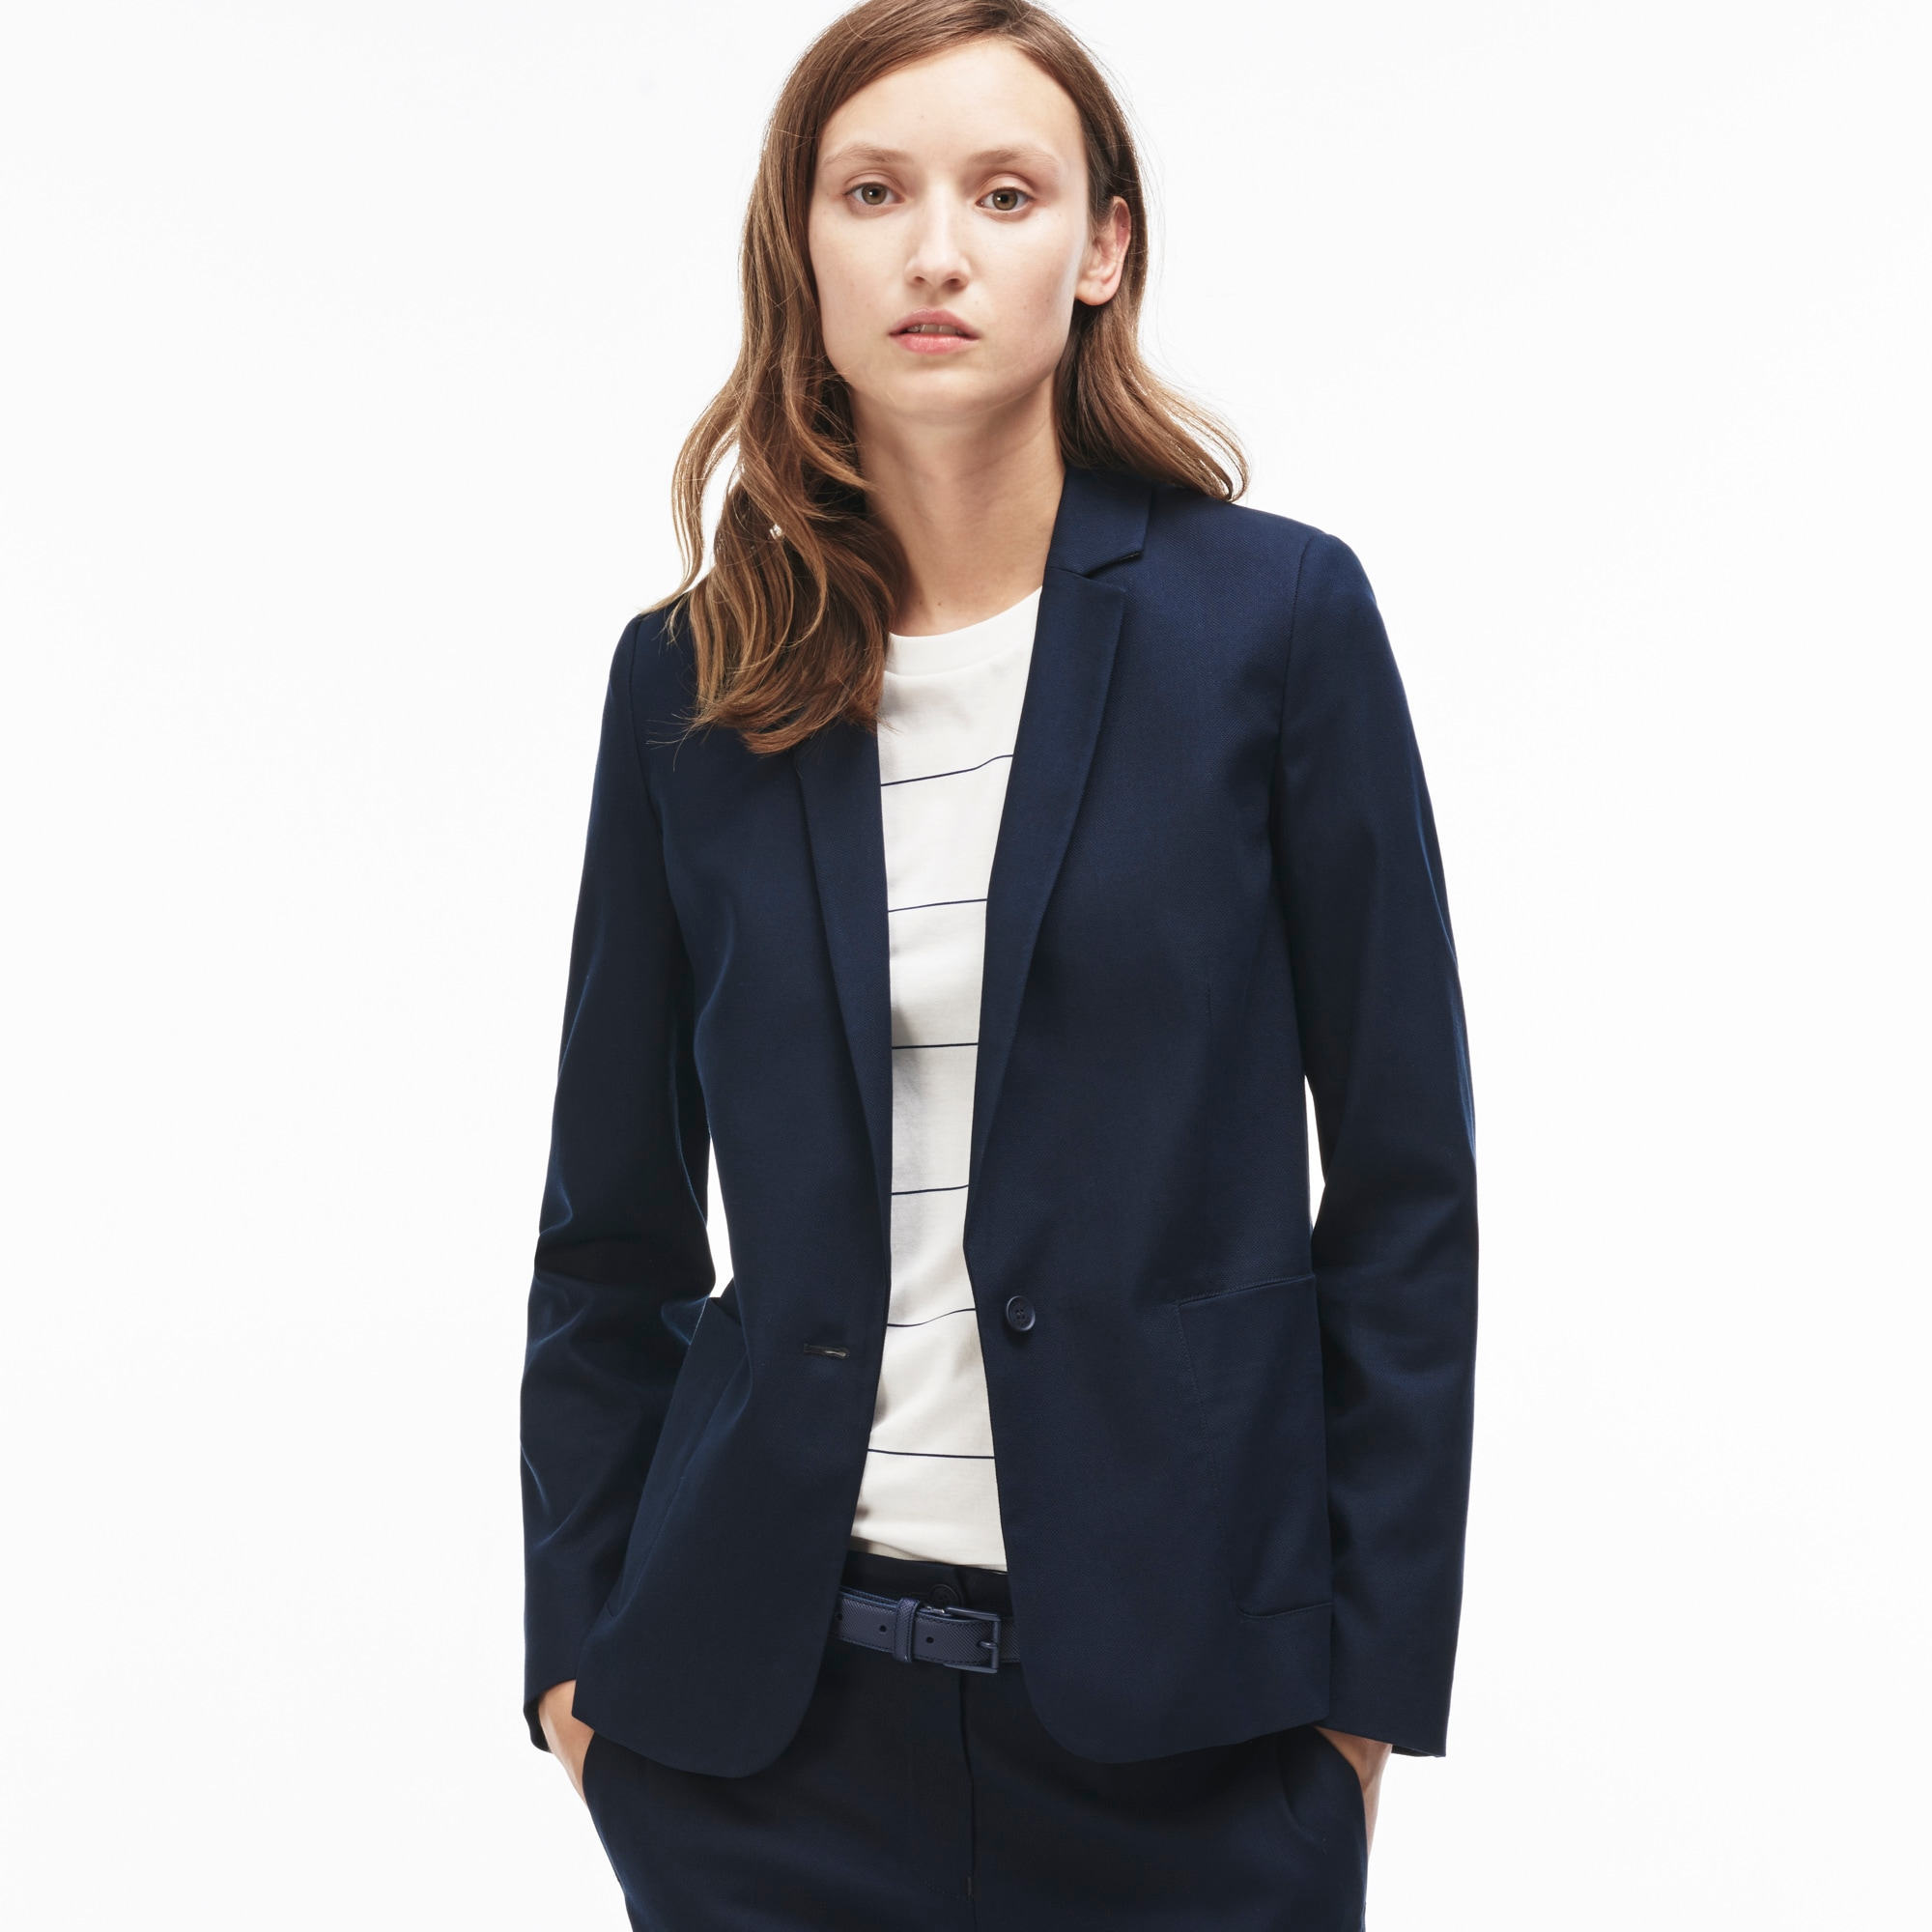 Women's Jackets and Coats on Sale | LACOSTE